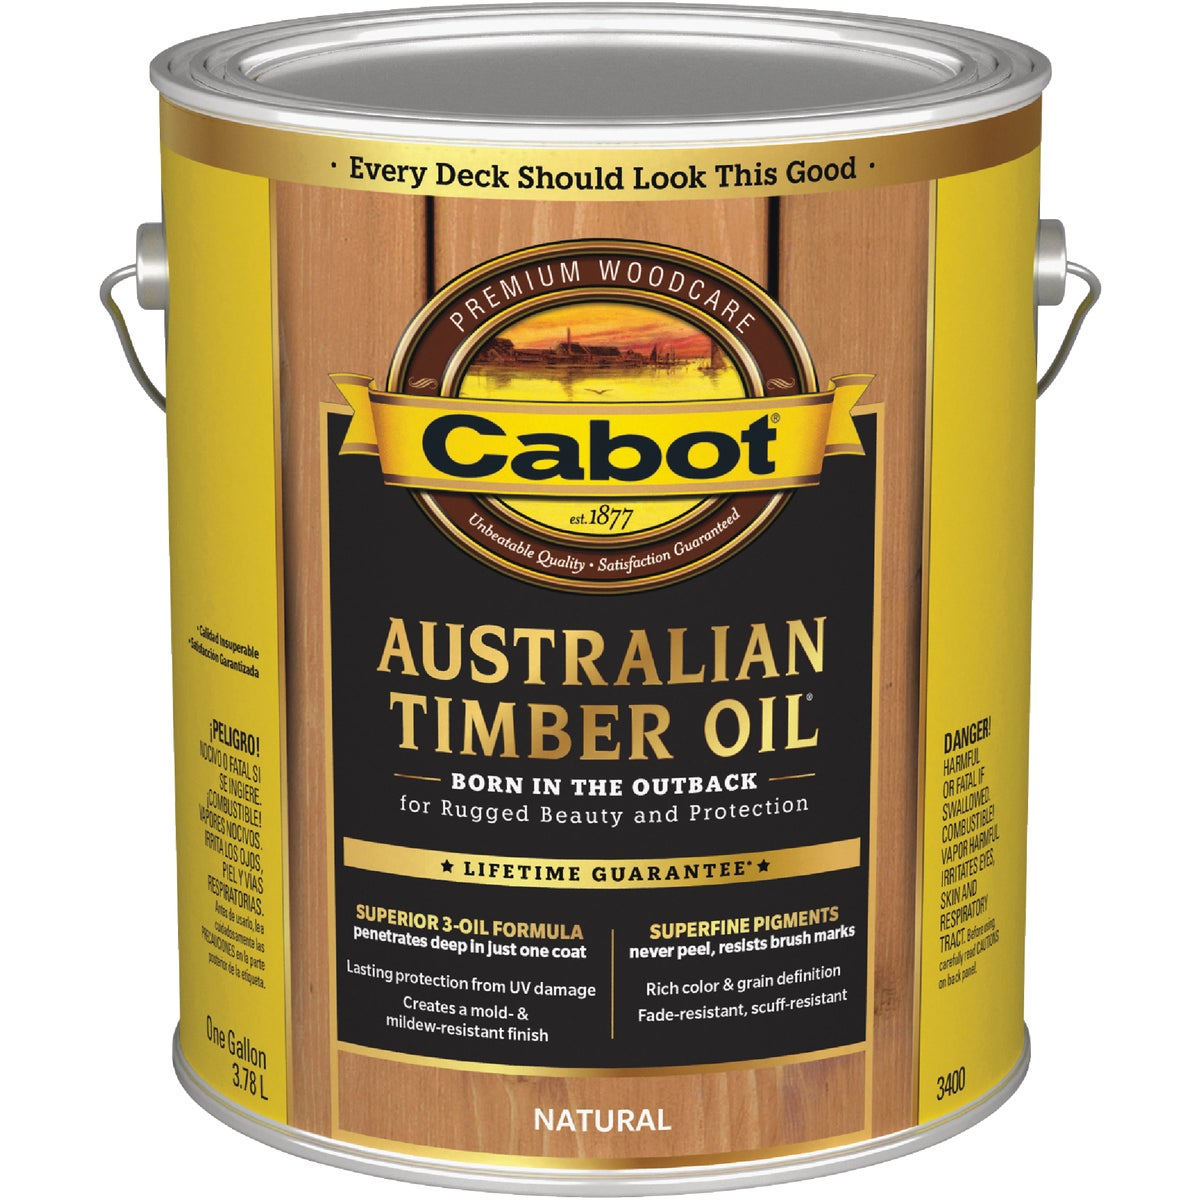 NATURL TIMBER OIL FINISH - 140.0003400.007 by Valspar Corp